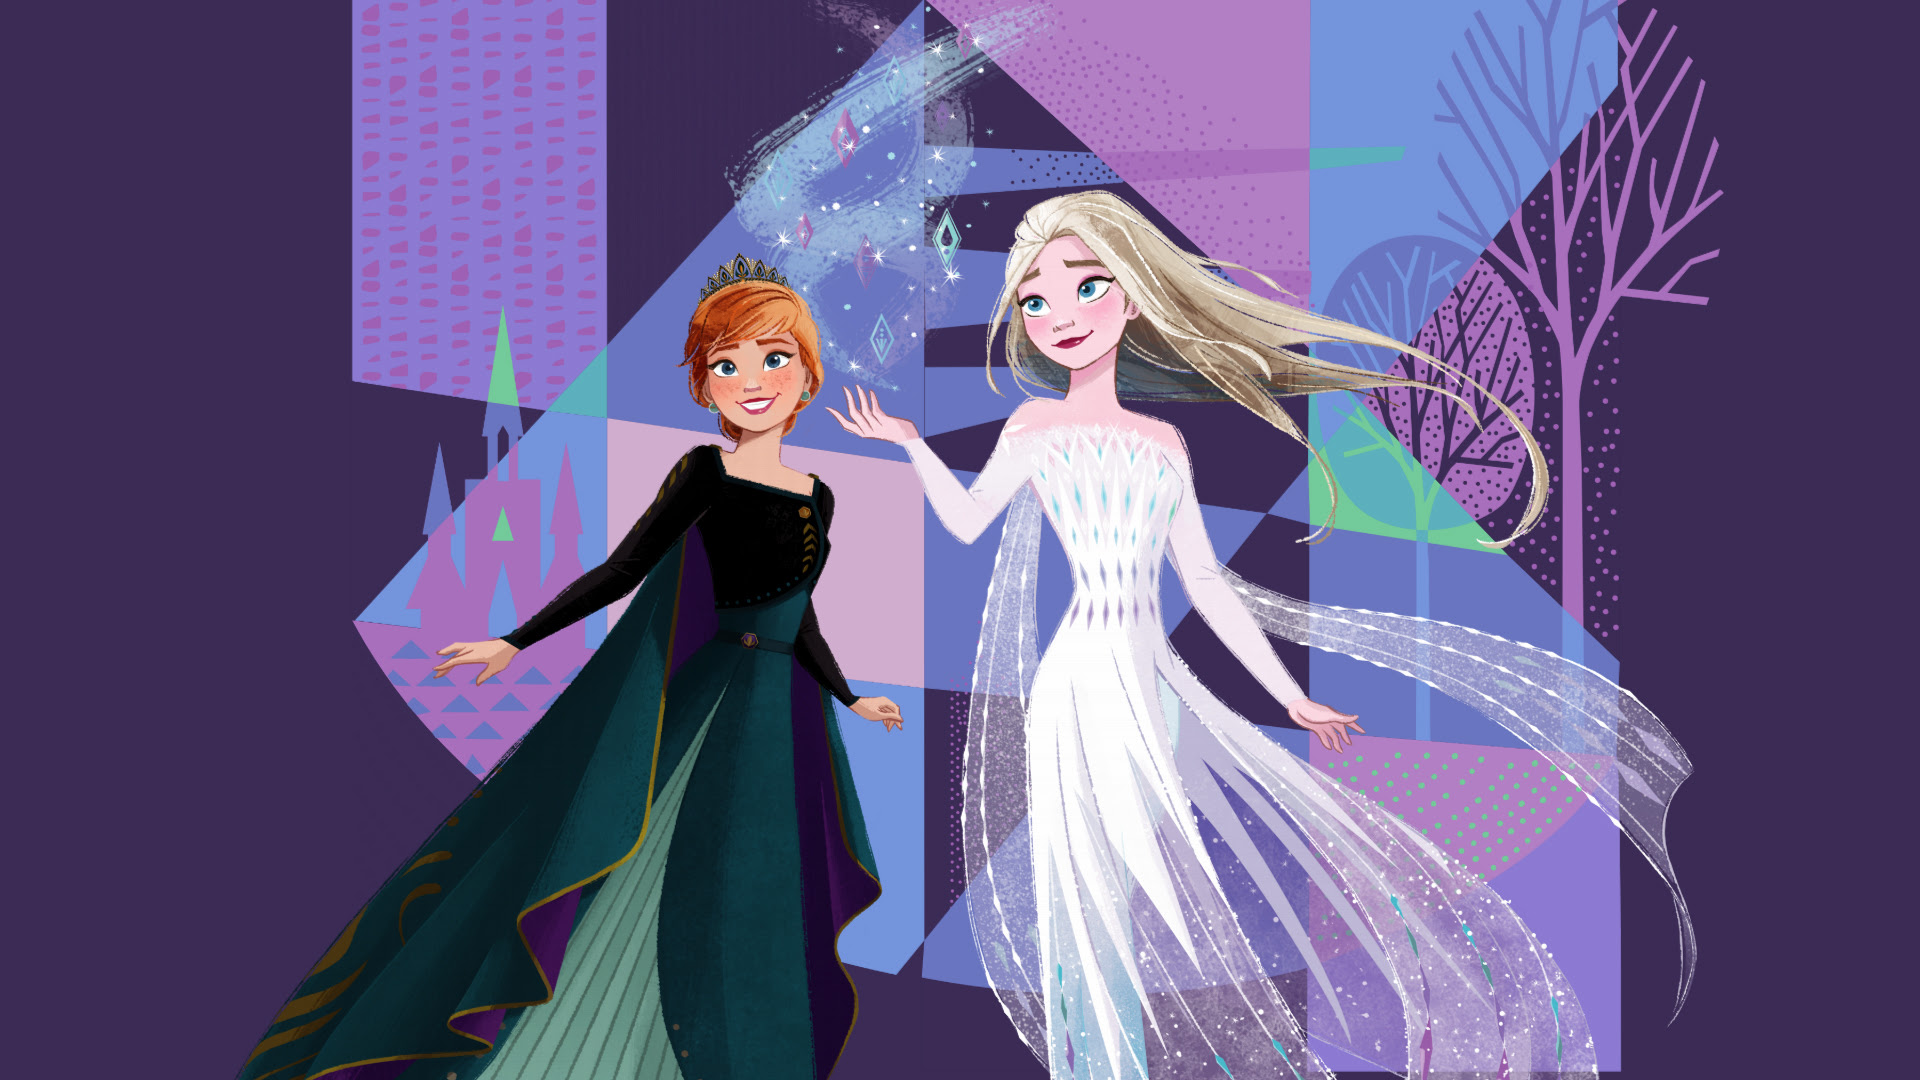 15 New Frozen 2 Hd Wallpapers With Elsa In White Dress And Her